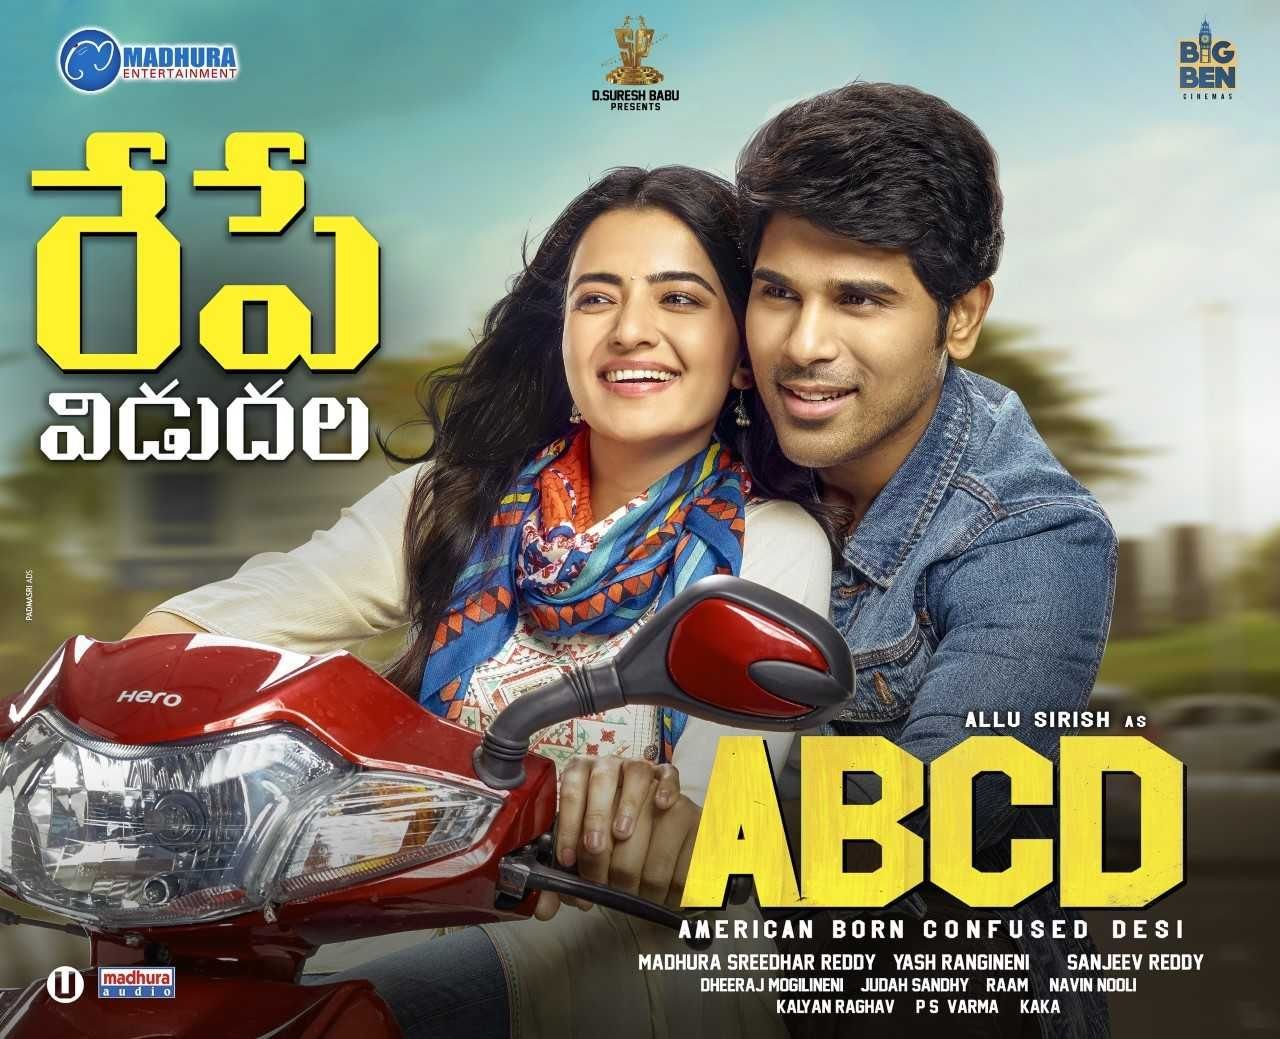 ABCD Release Posters